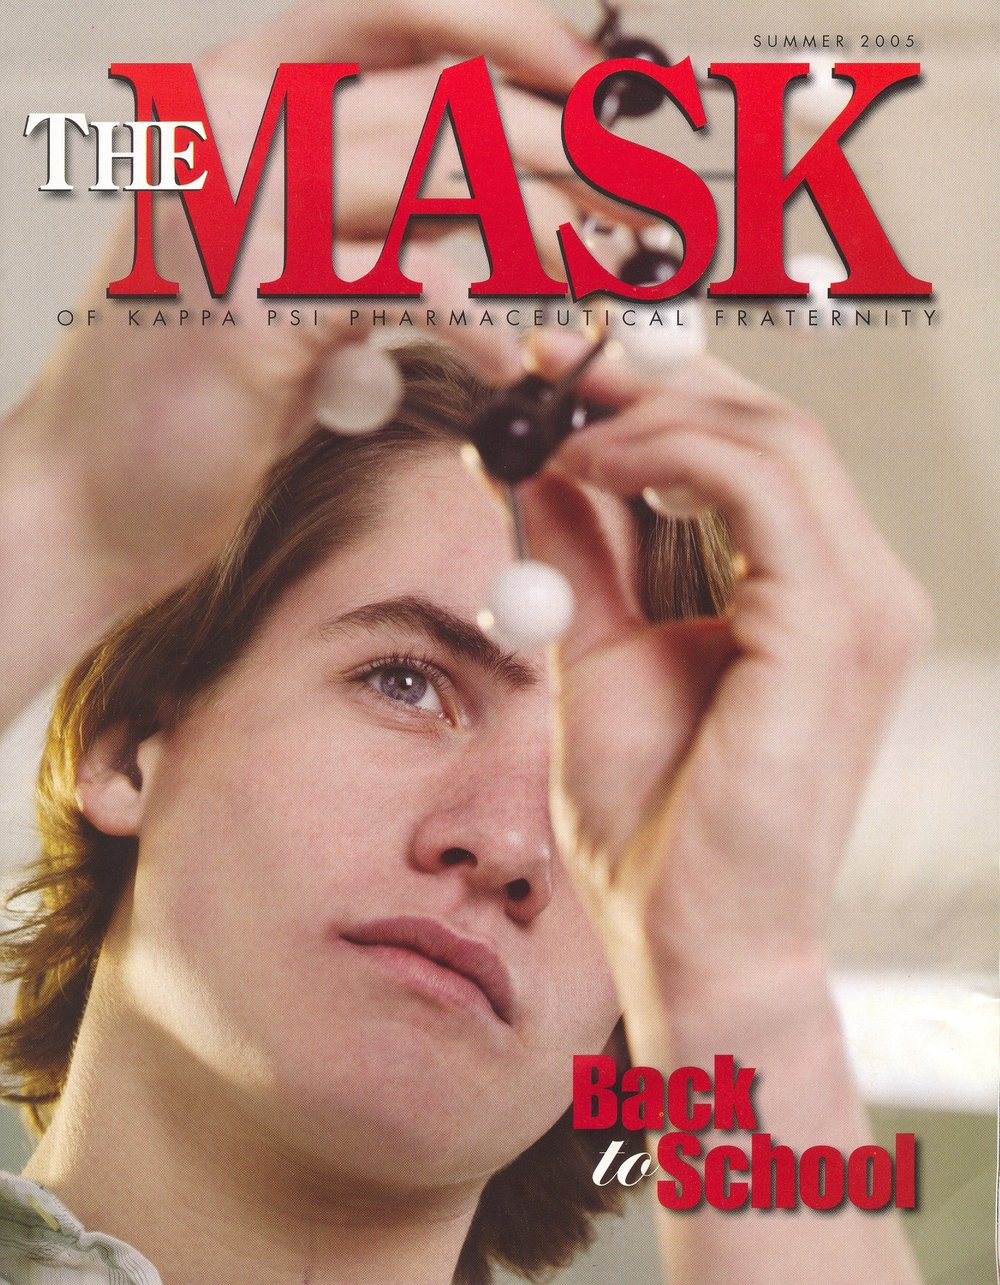 mask_cover_102-3_2005_sum.jpg